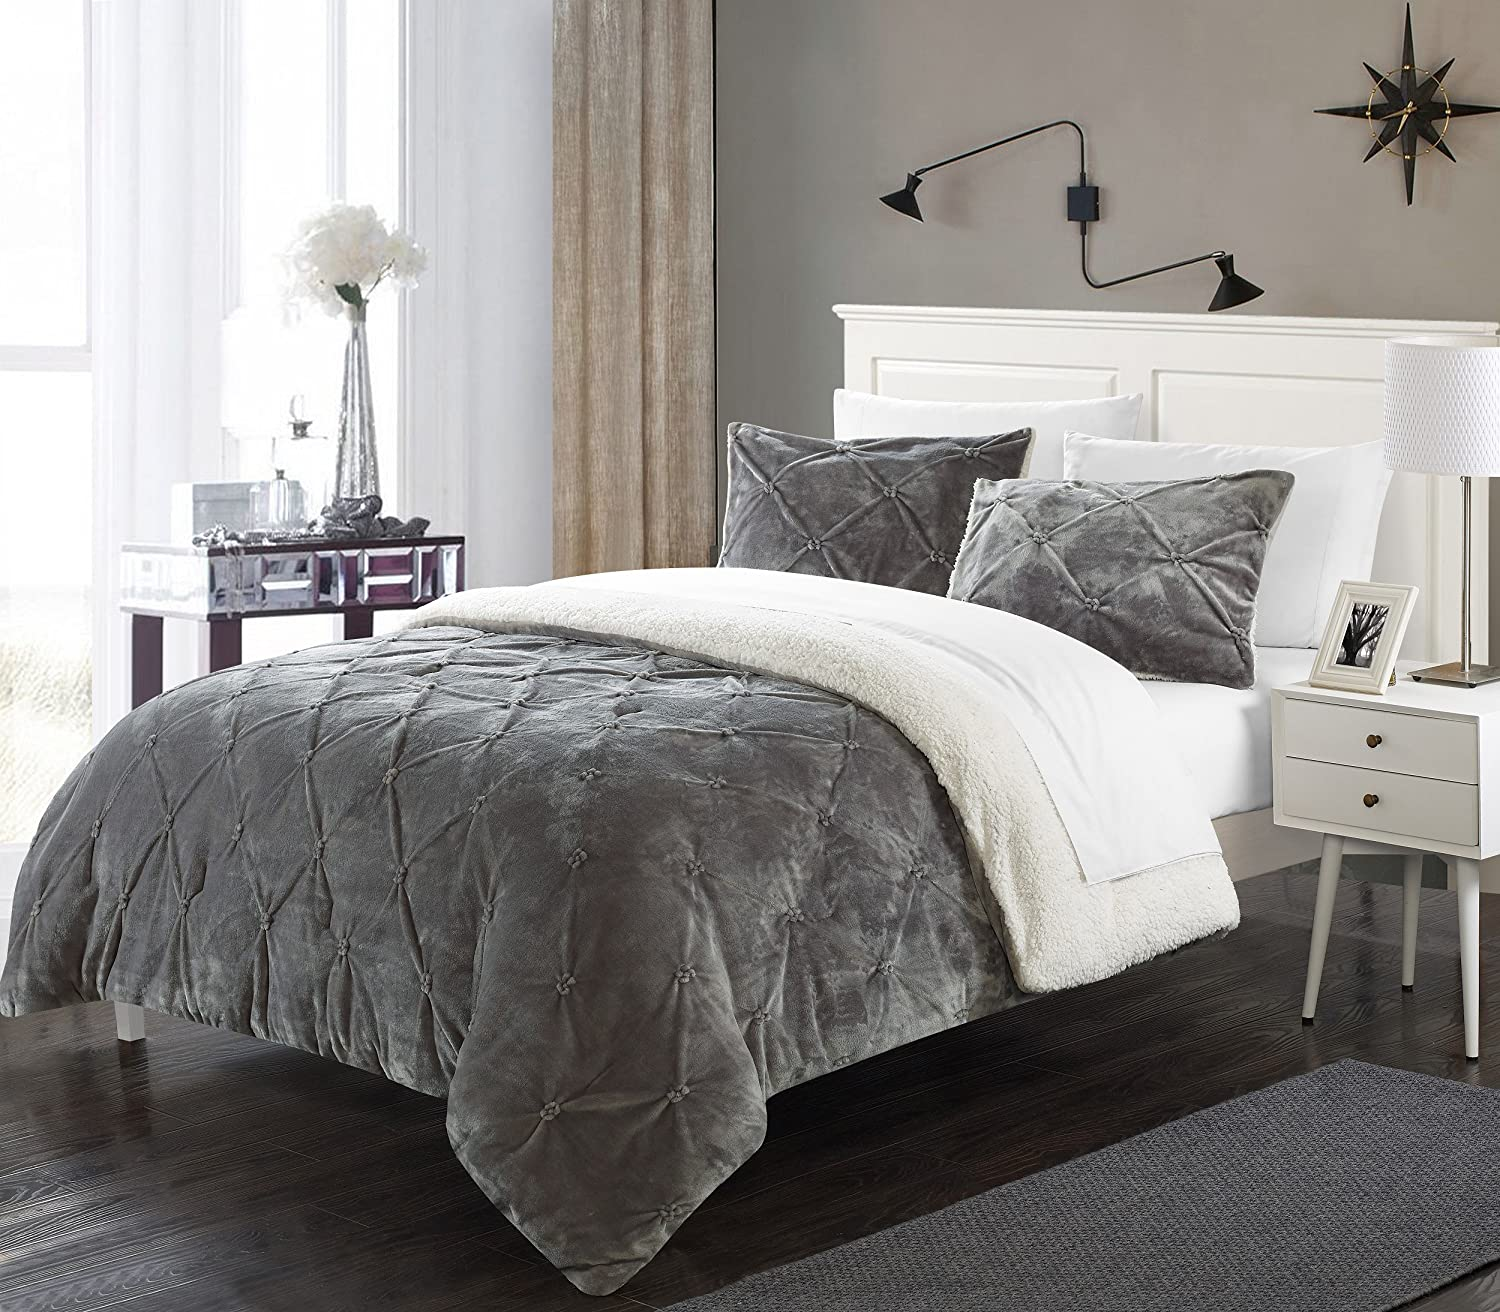 Perfect Home 3 Piece Enzo Pinch Pleated Ruffled and Pintuck Sherpa Lined King Bed In a Bag Comforter Set Grey